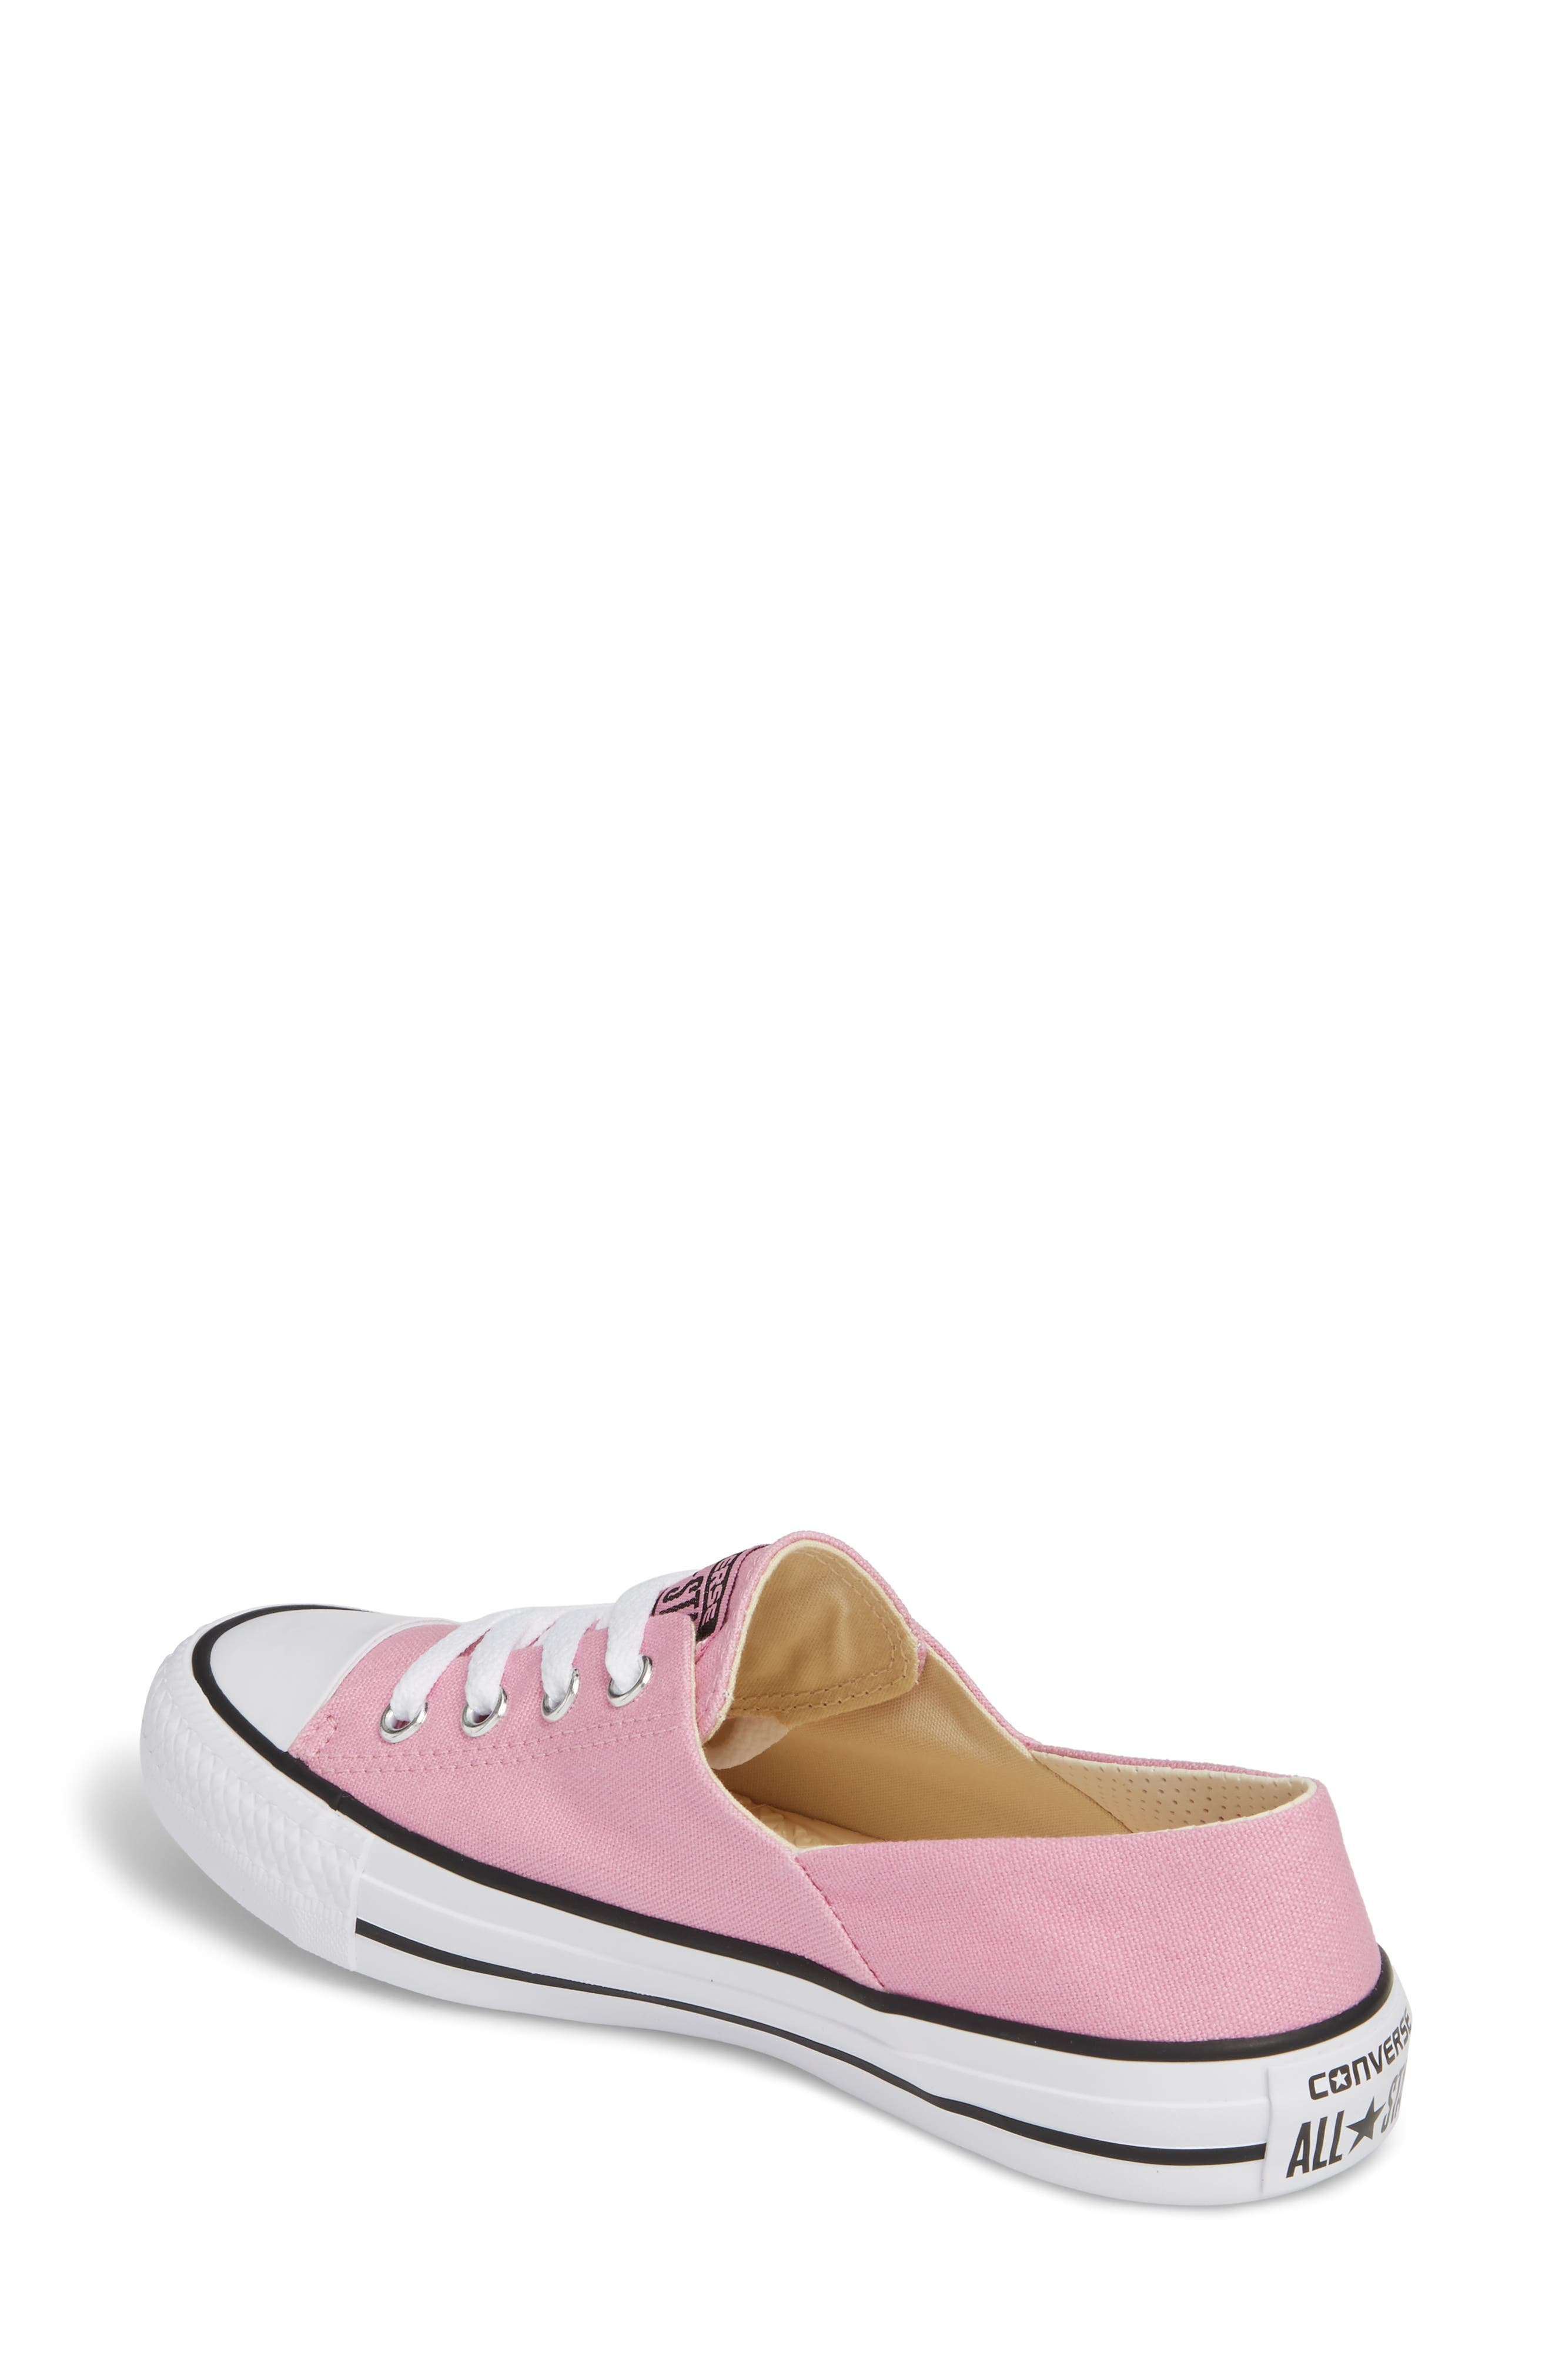 Alternate Image 2  - Converse Chuck Taylor® All Star® Coral Ox Low Top Sneaker (Women)